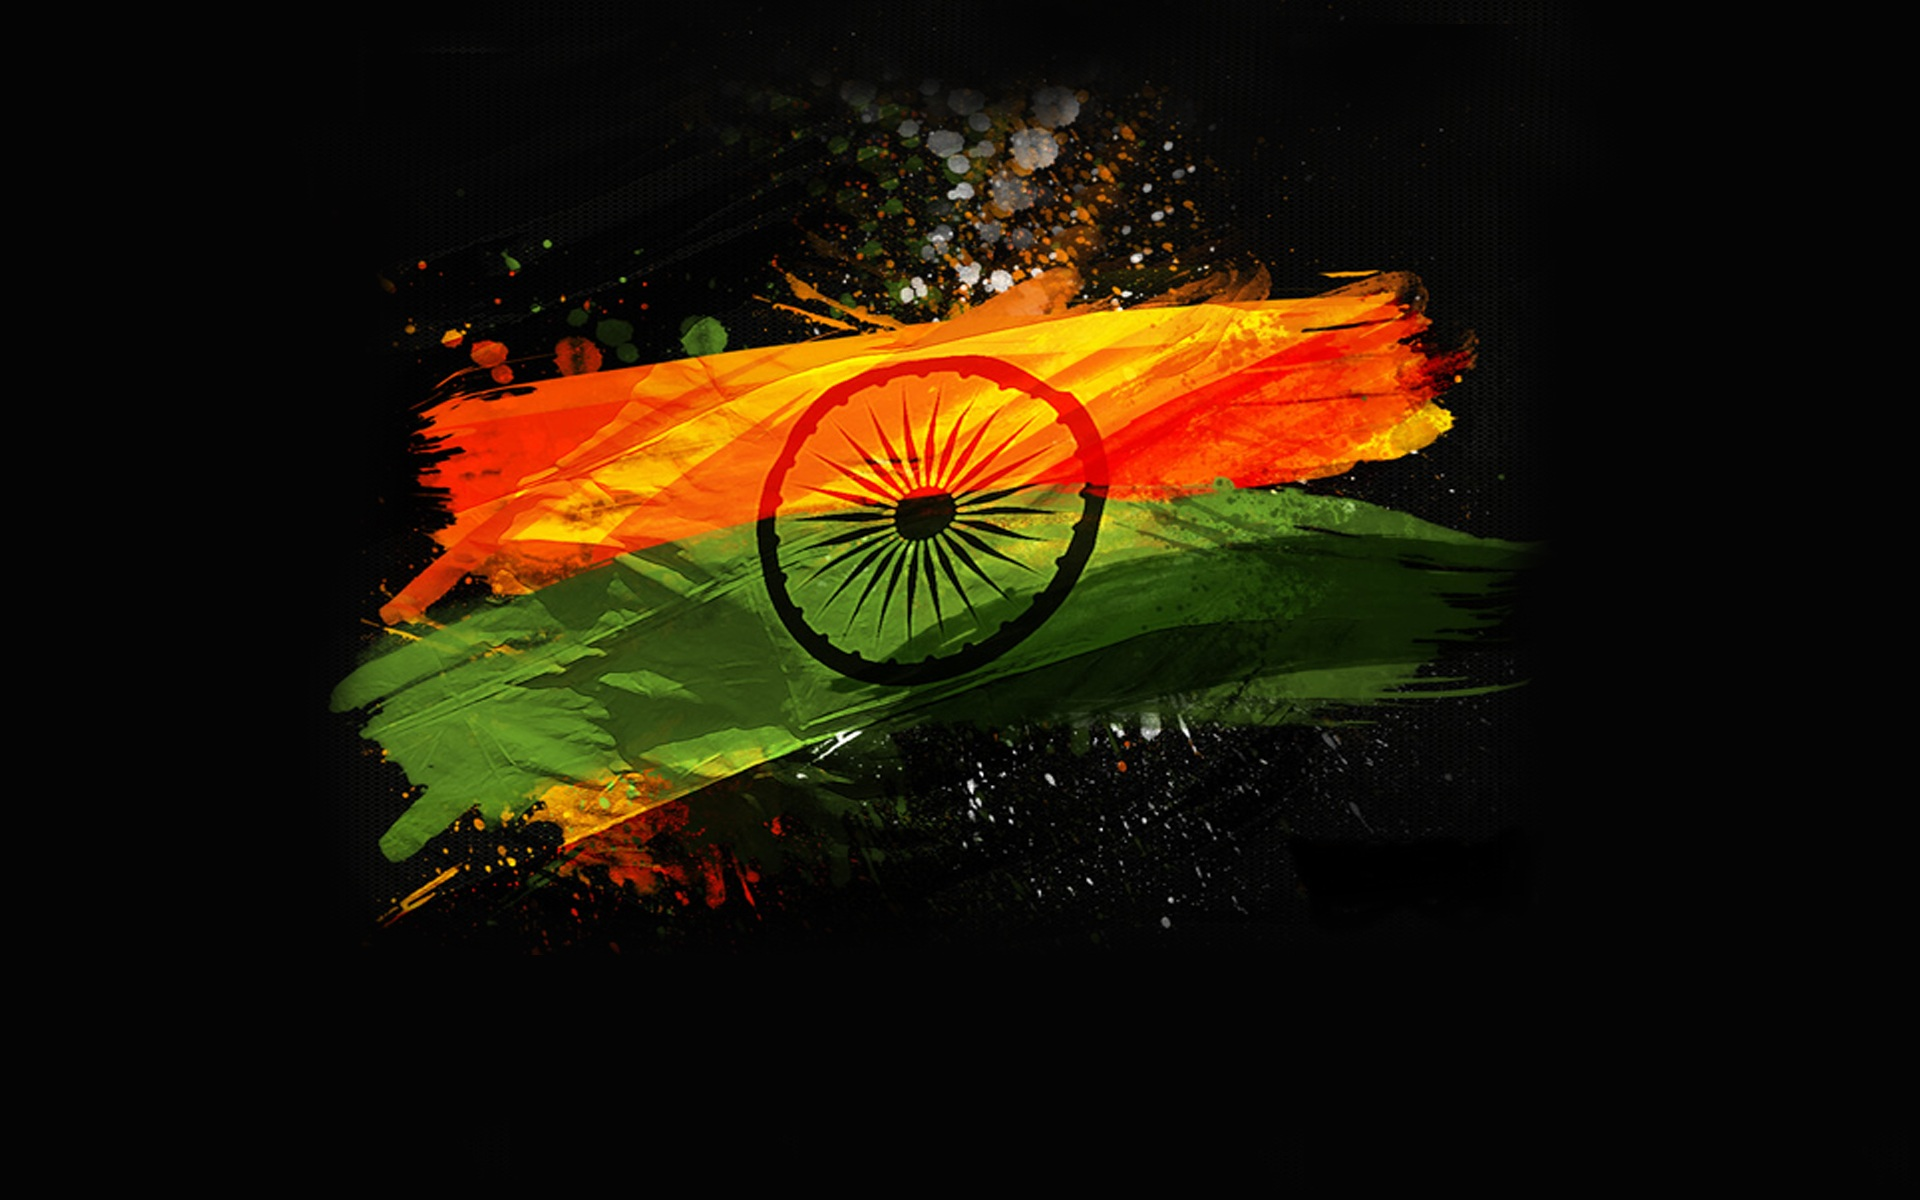 Indian Hd Backgrounds: Hd Wallpaper India